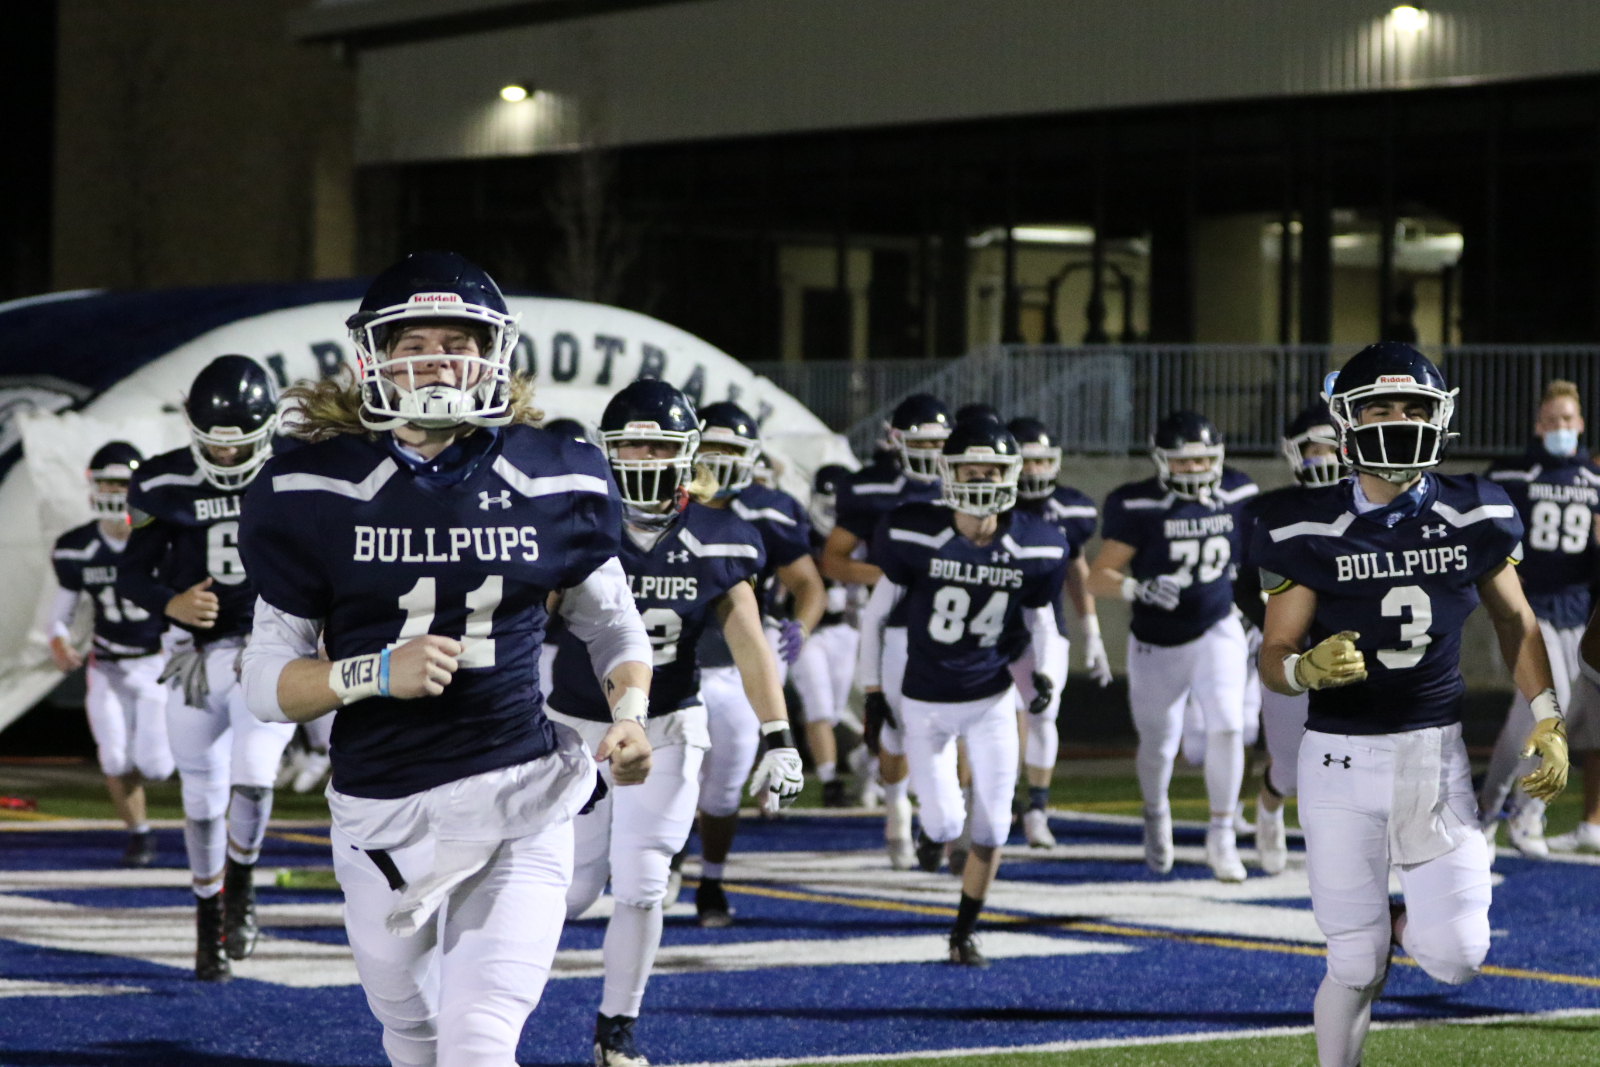 Bullpups come up big, dominate LC